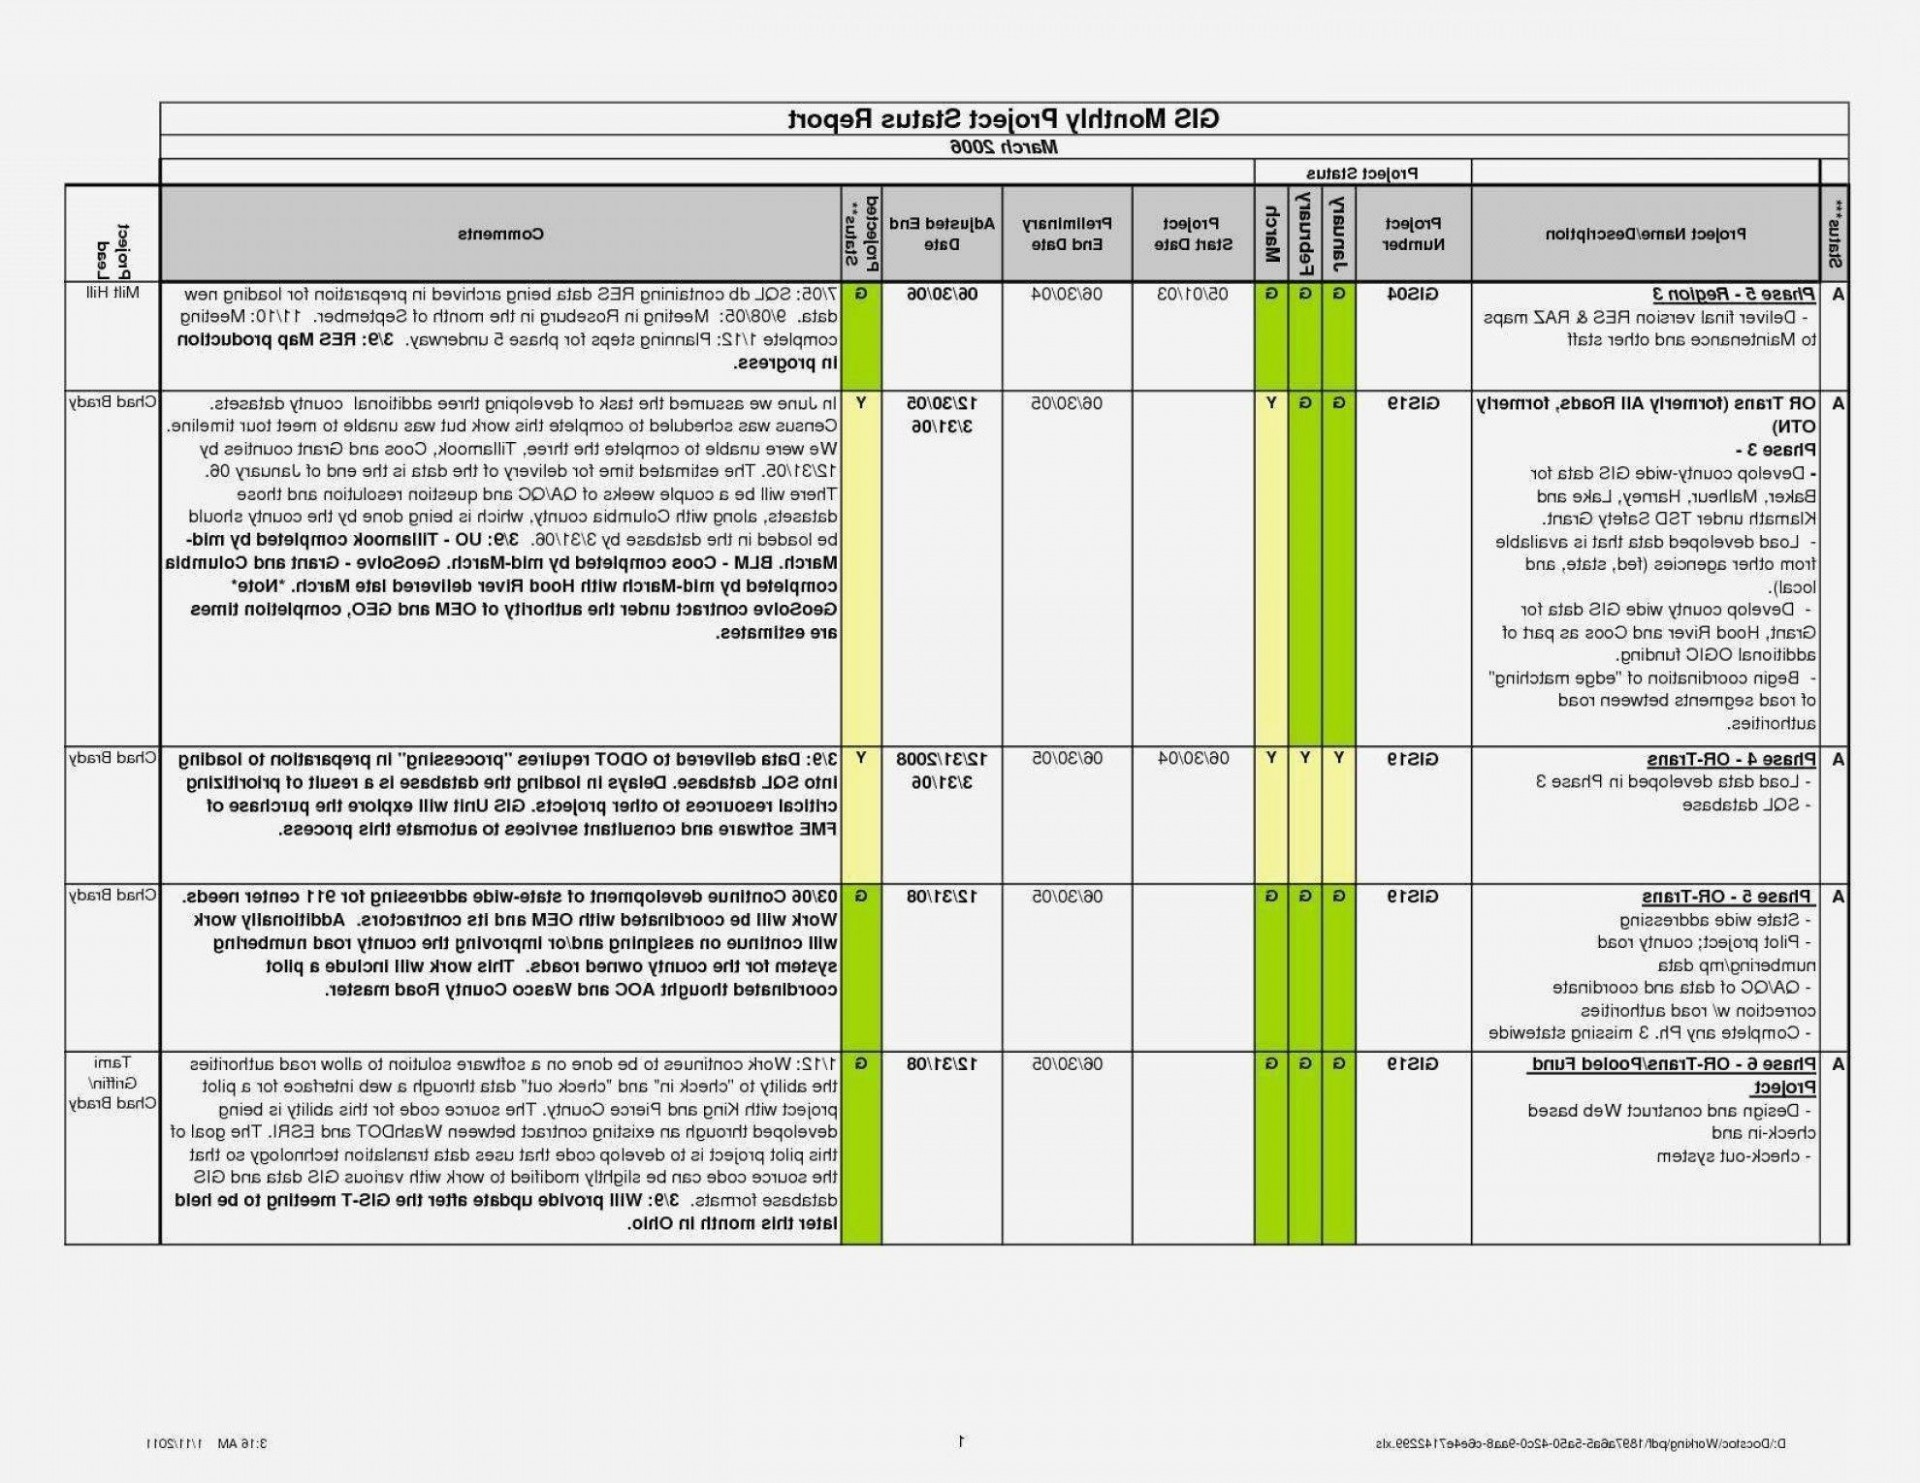 003 Impressive Project Management Report Format Photo  Template Word Free Example Pdf1920